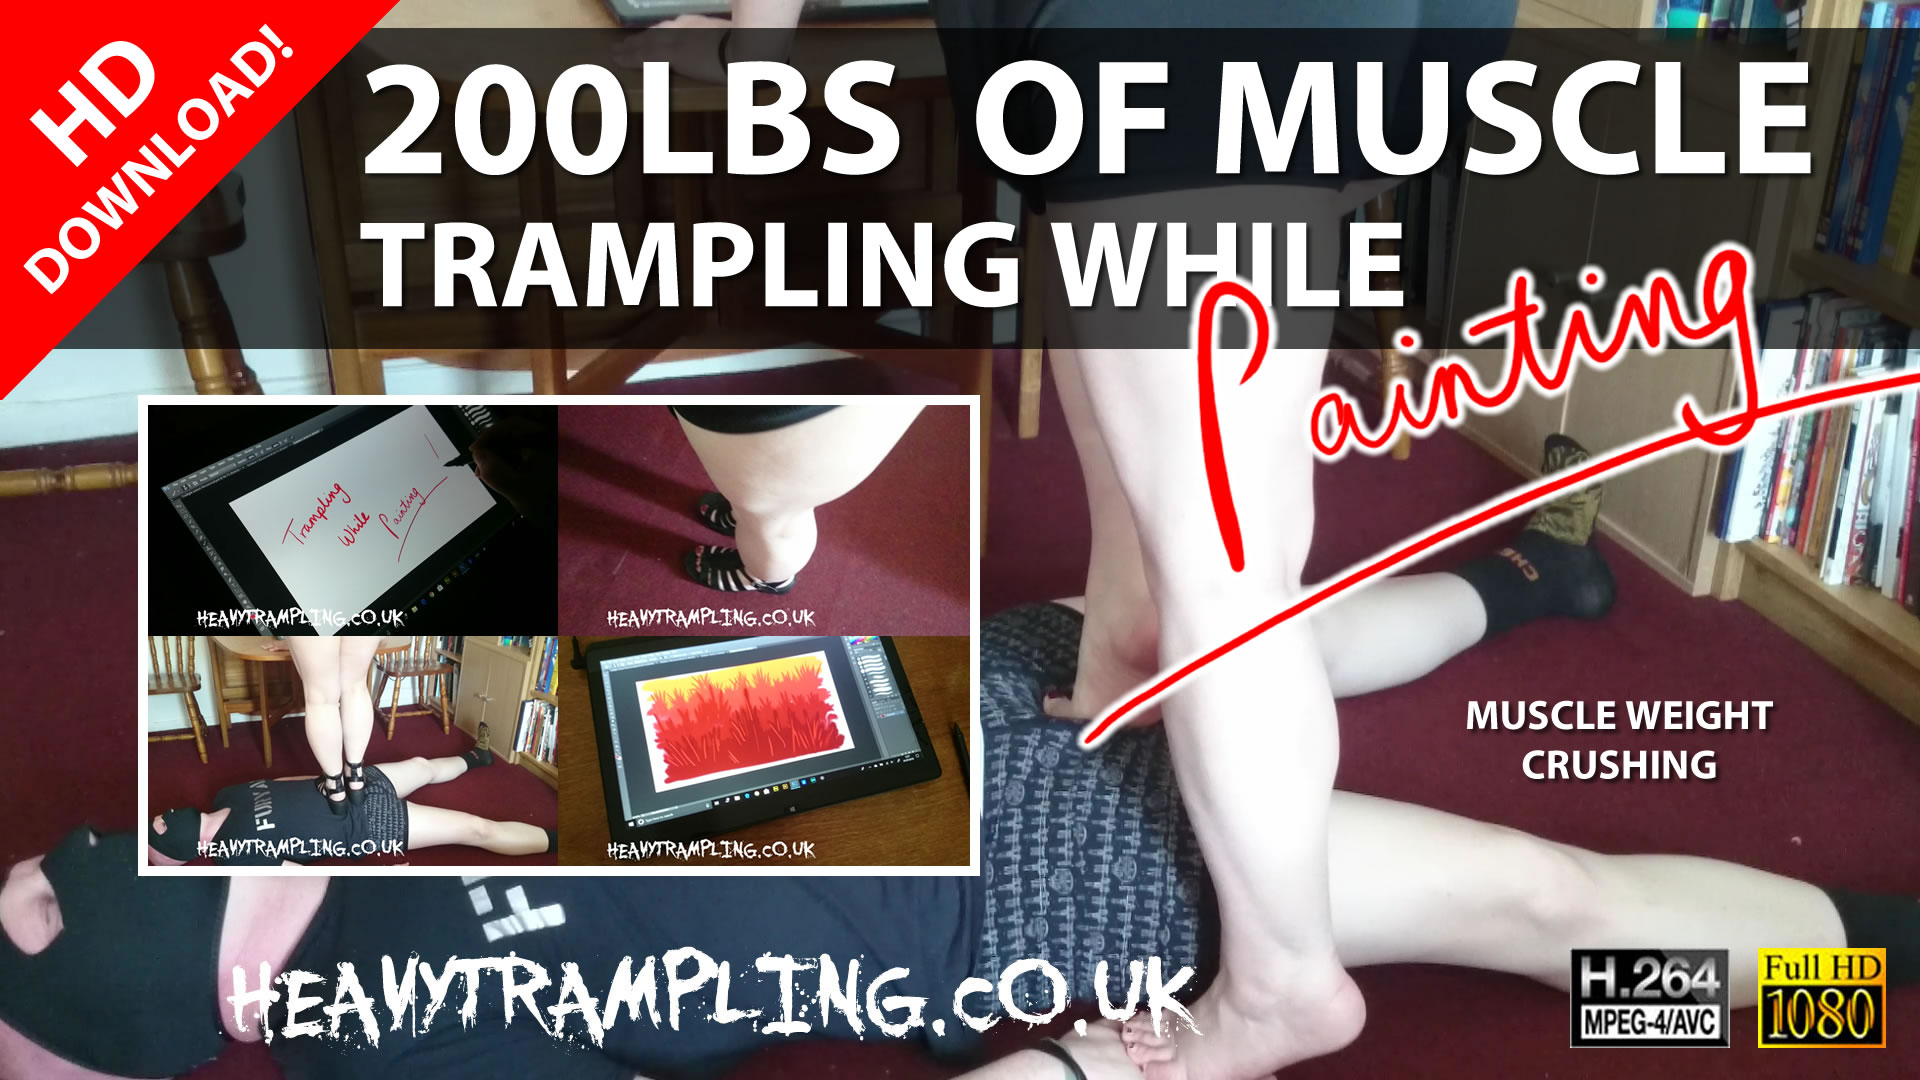 Trampling: 200lbs of Muscle Trampling while Painting!